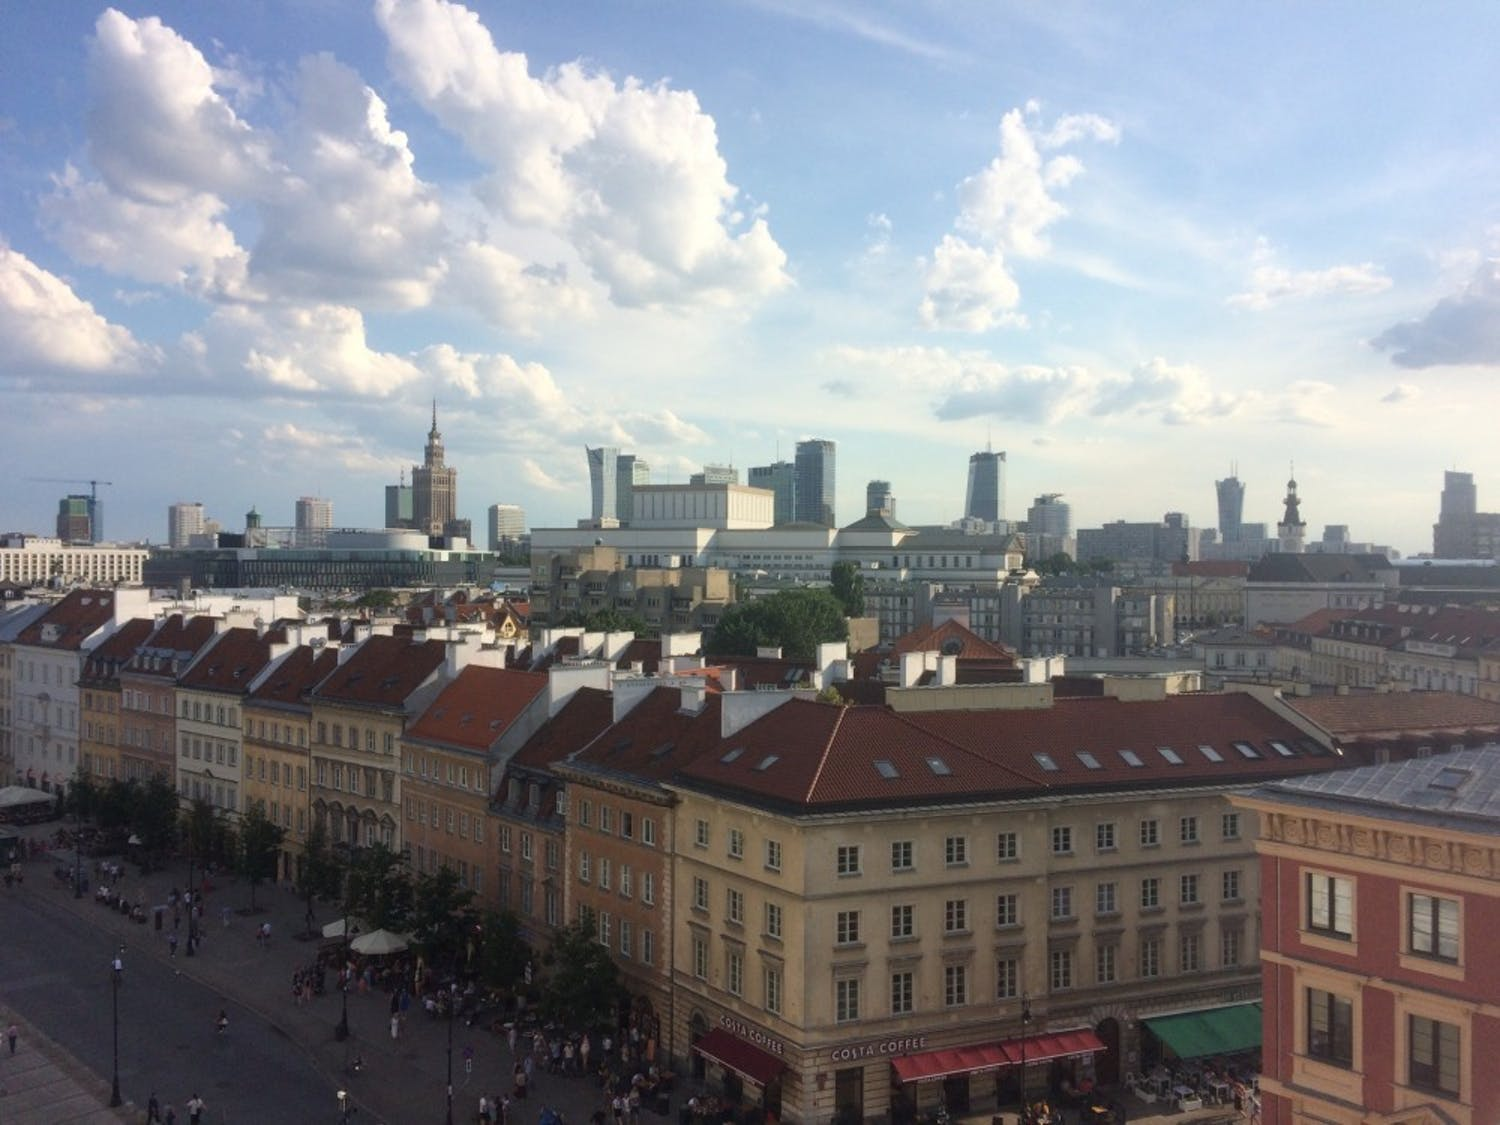 Although a rather uncommon destination for tourists, the new democracy of Poland has rich history and beautiful citiesto offer to visitors.